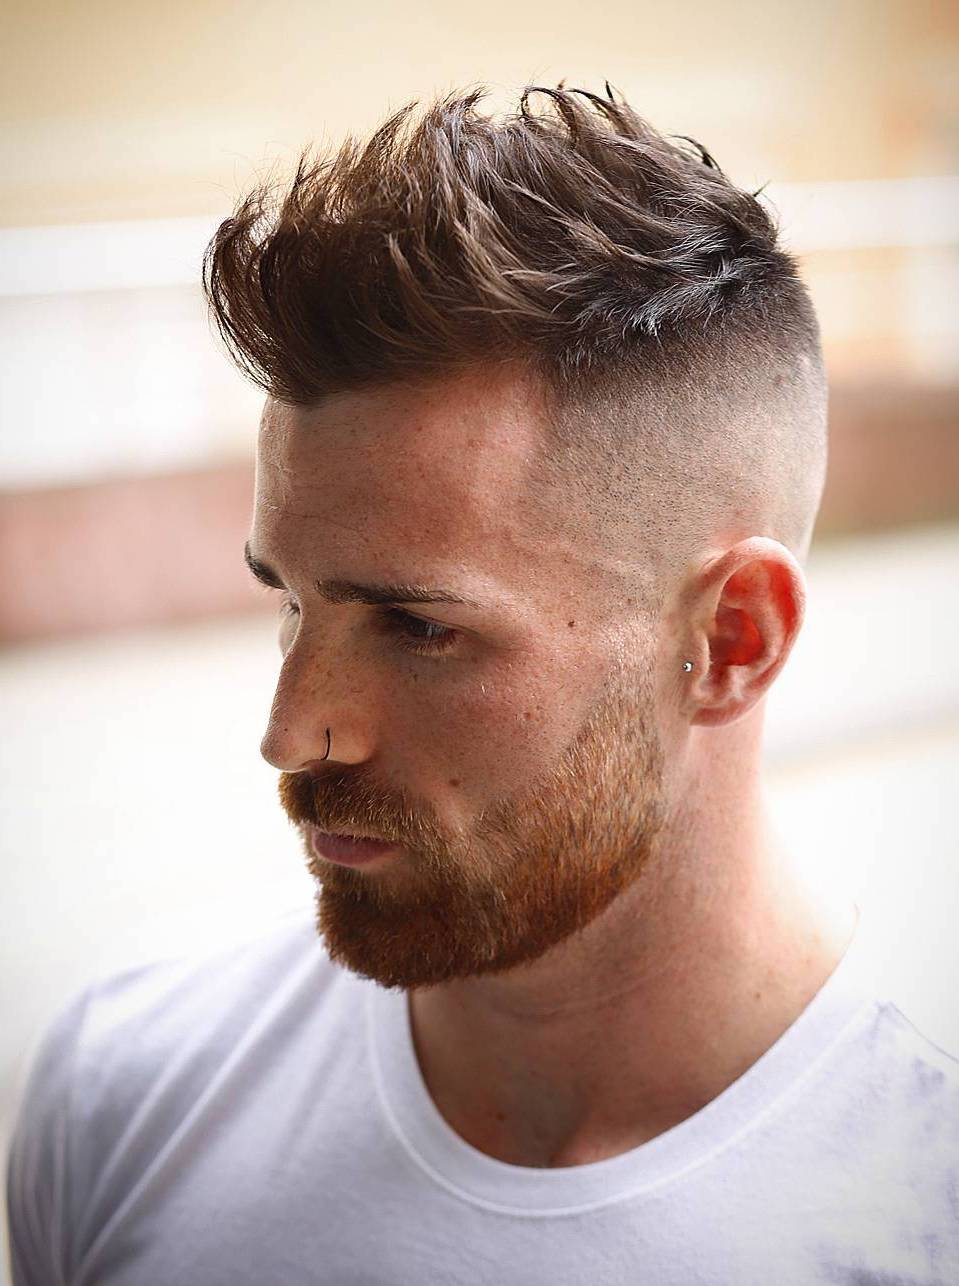 100 Trending Haircuts For Men Haircuts For 2020 Haircut Inspiration